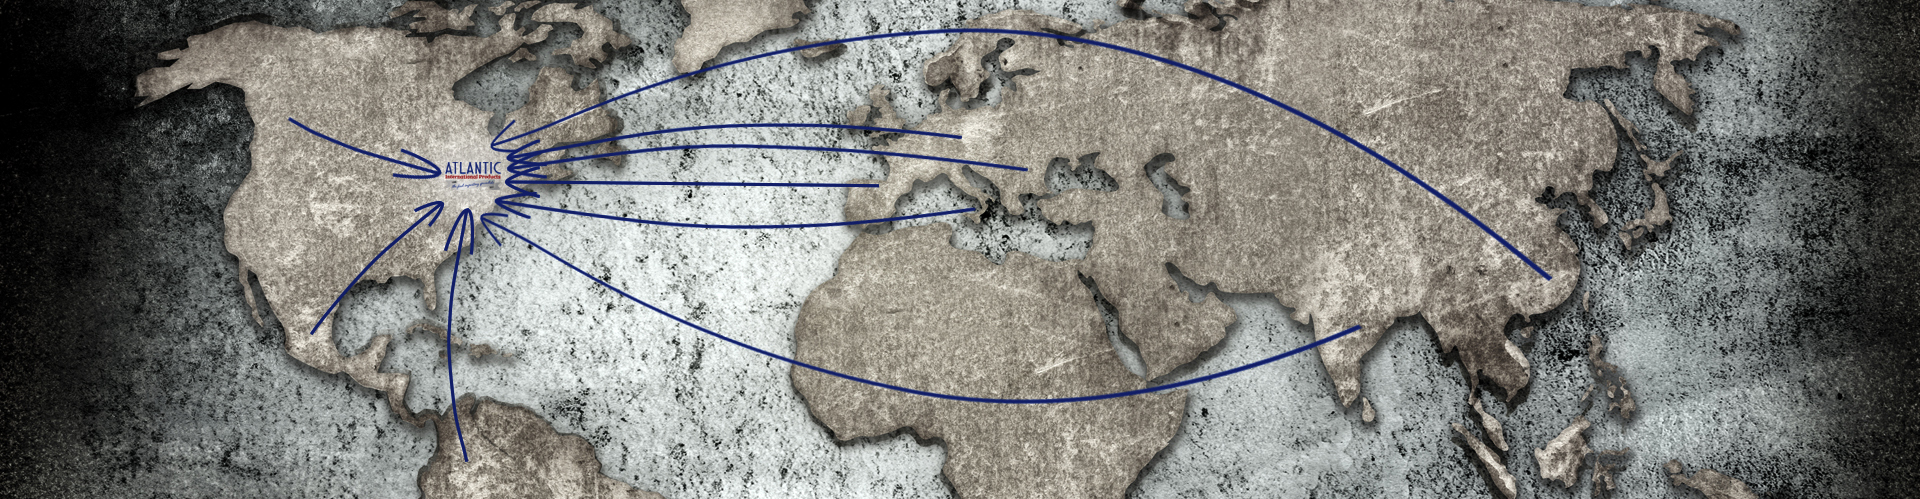 World Map with arrows pointing at AIP logo